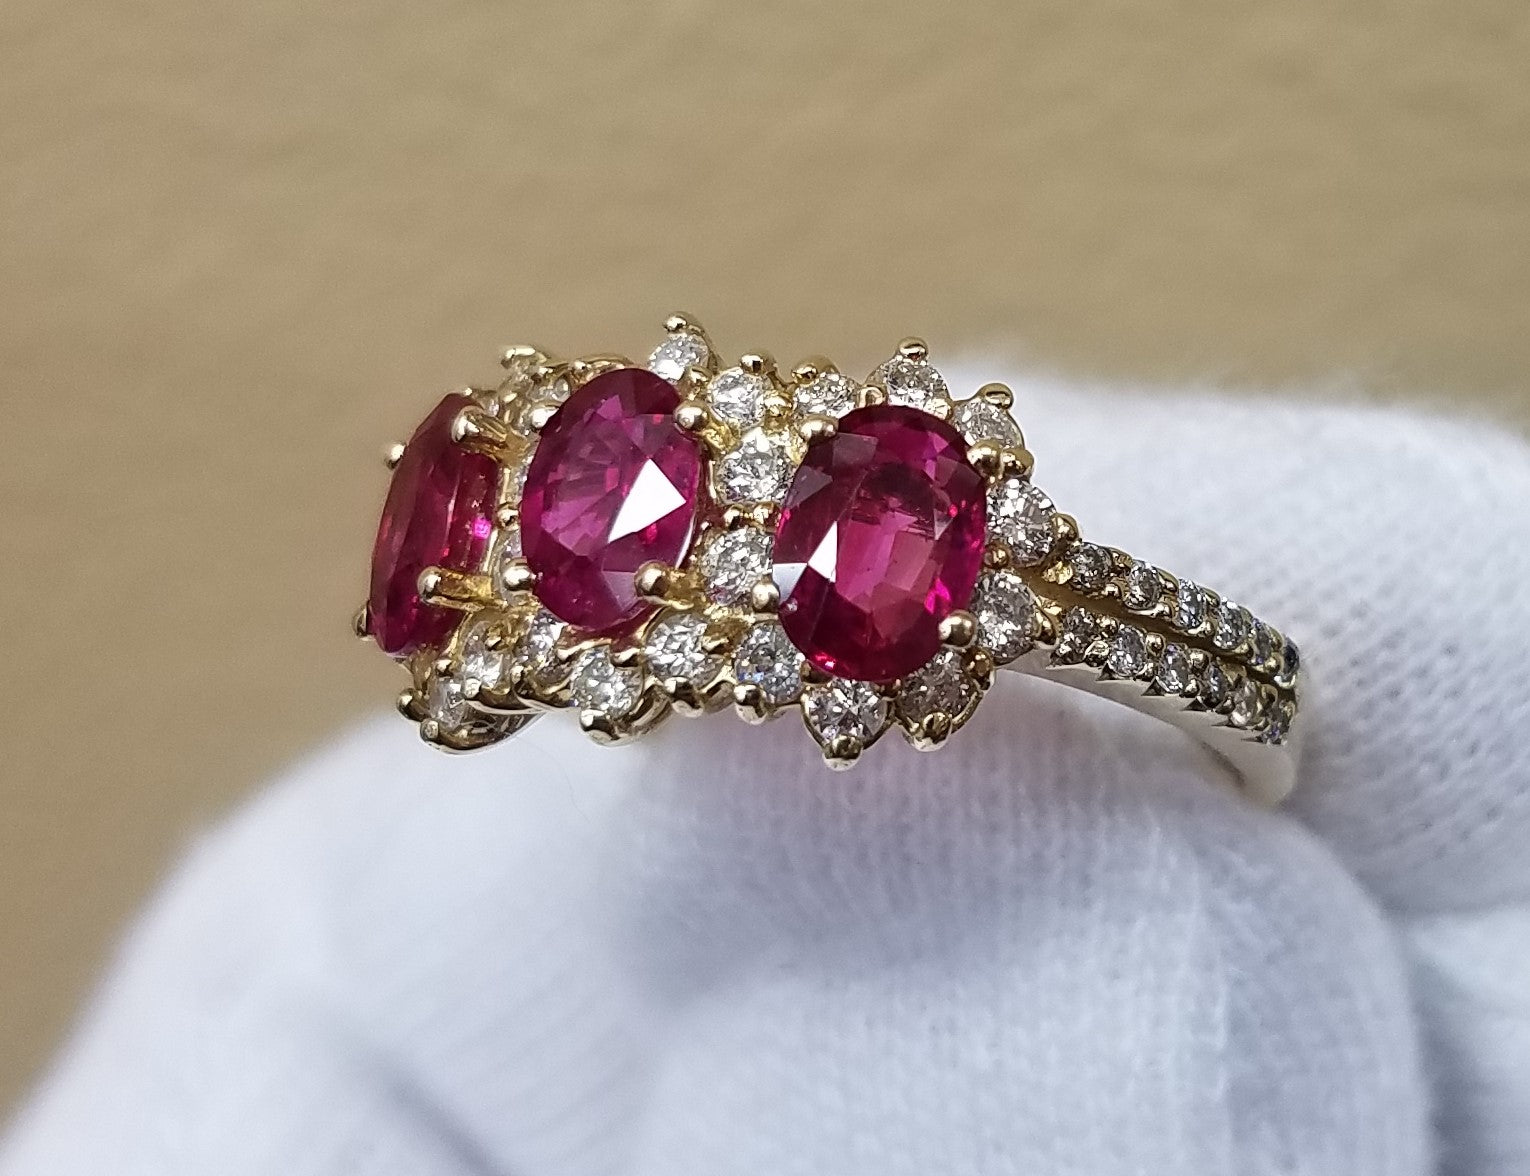 RUBY AND DIAMOND RING 14KT GOLD